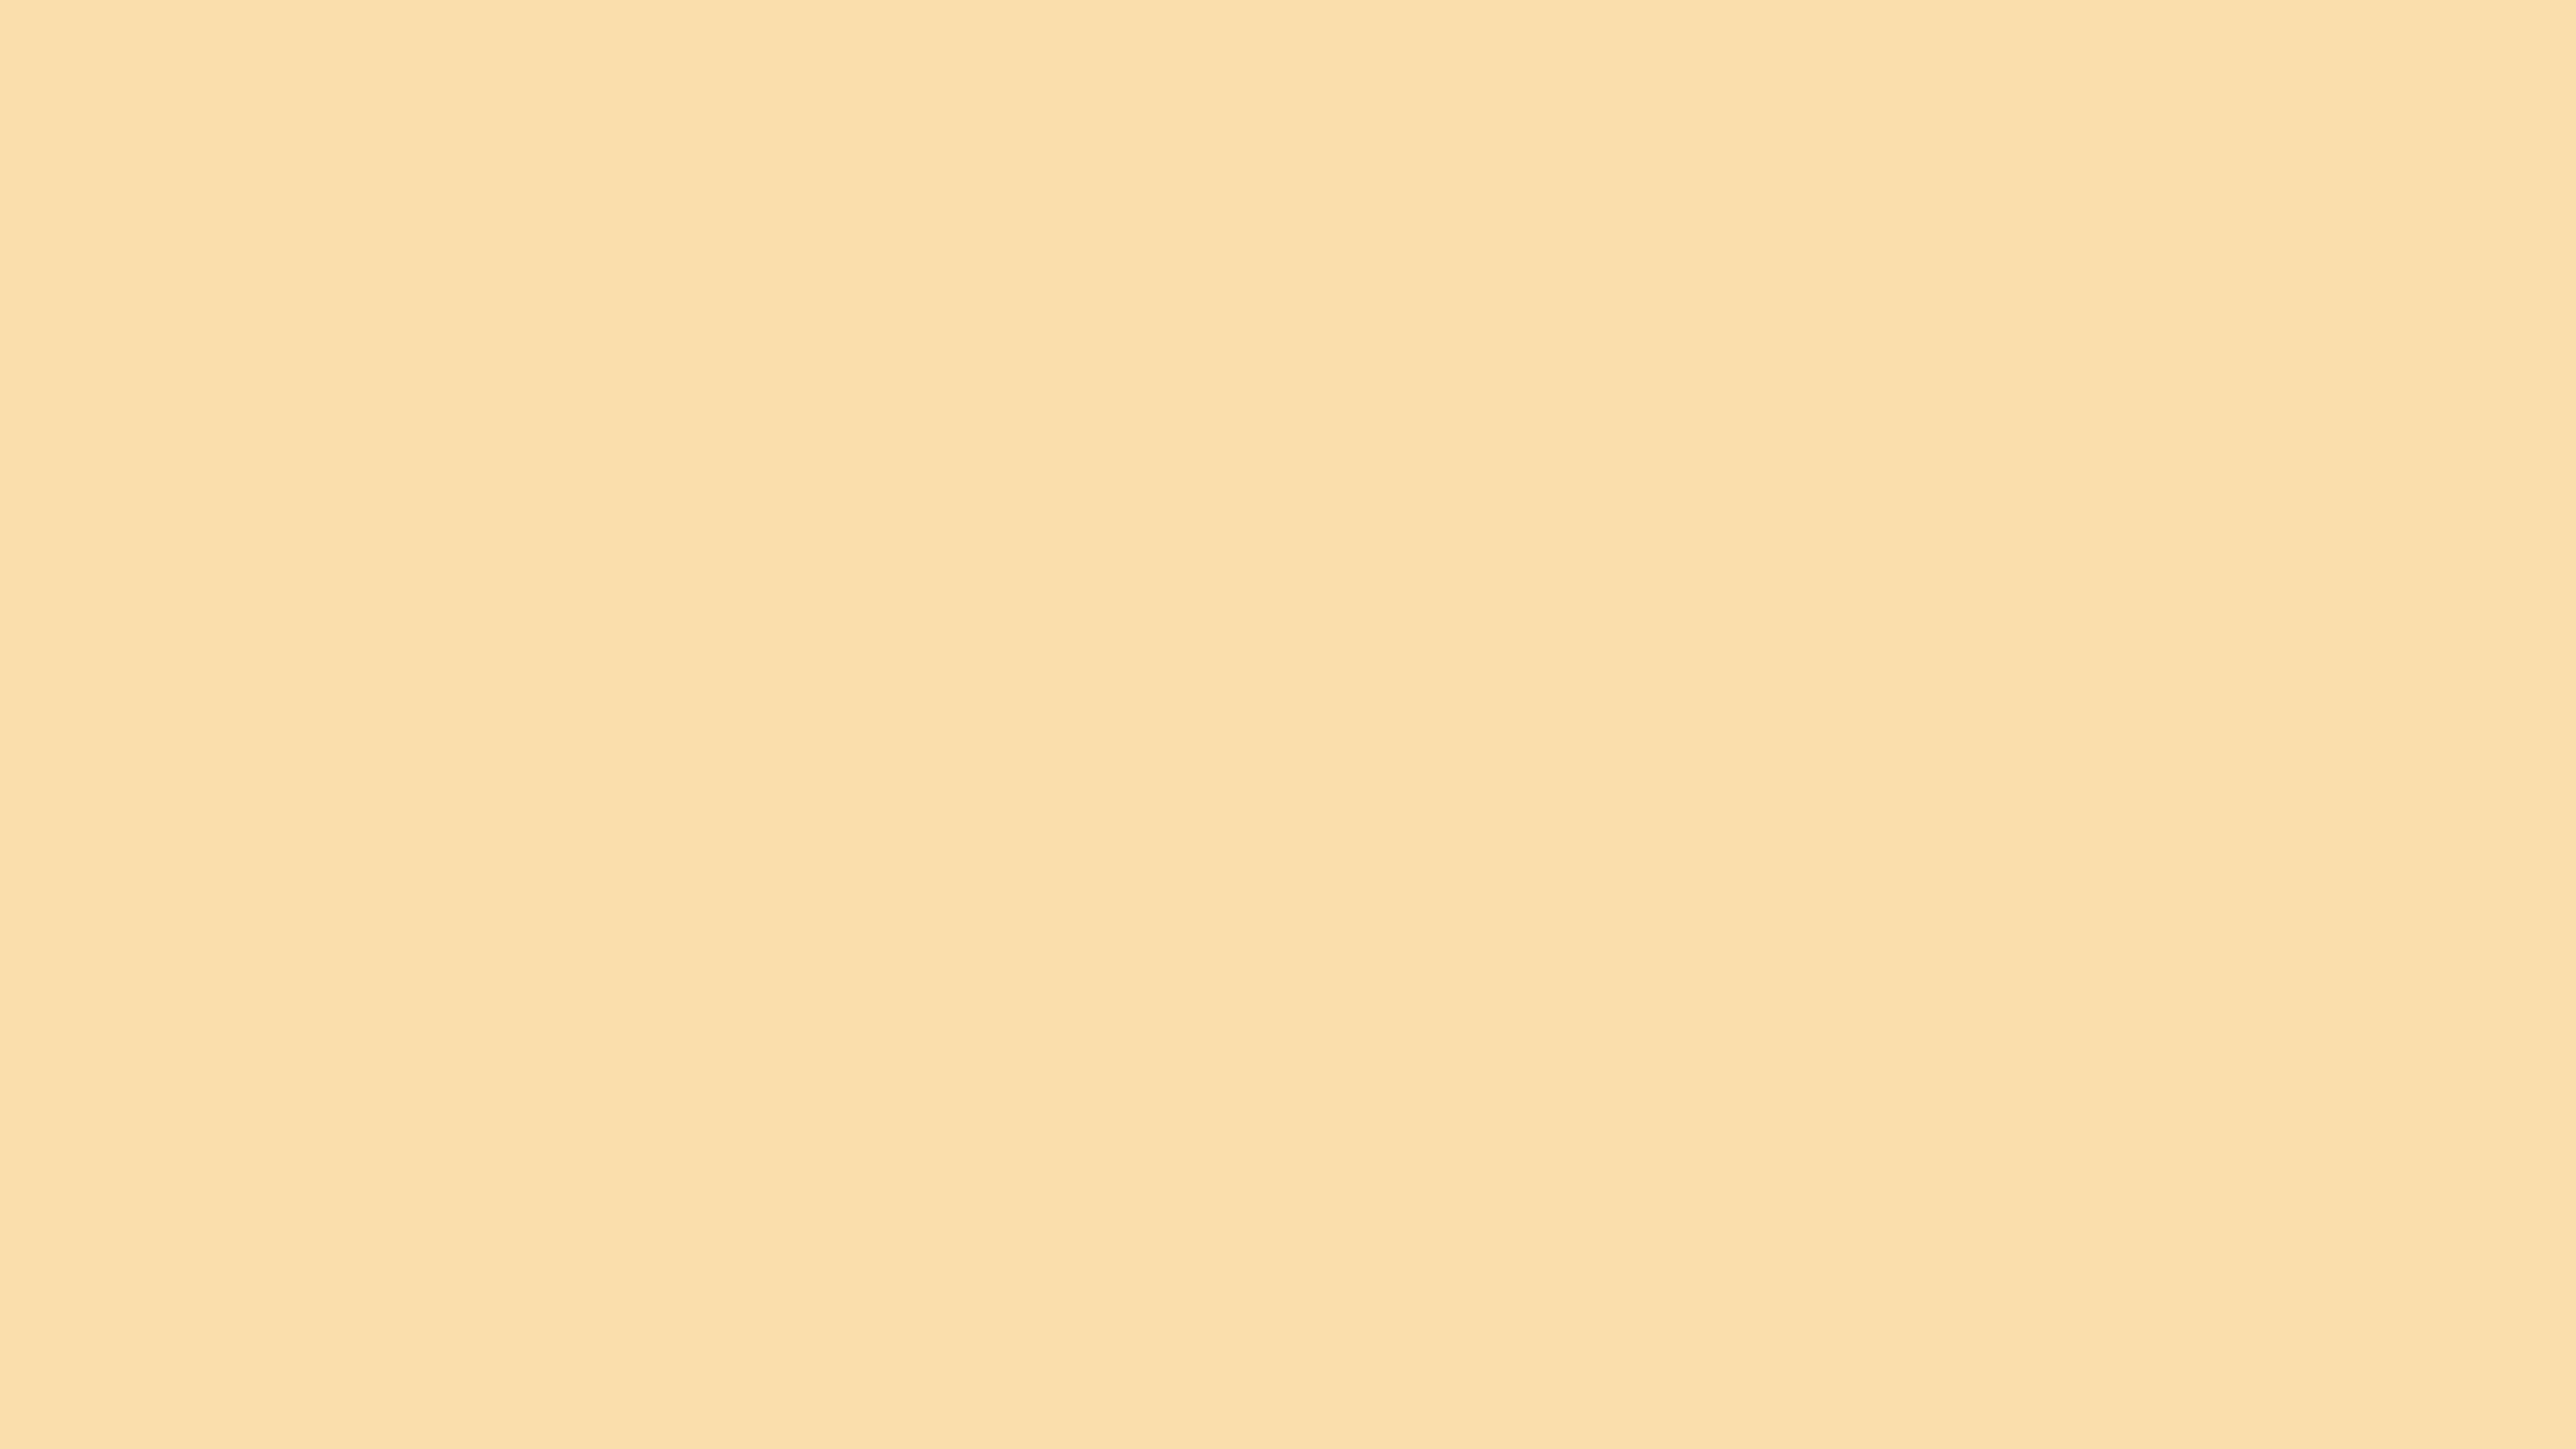 5120x2880 Peach-yellow Solid Color Background